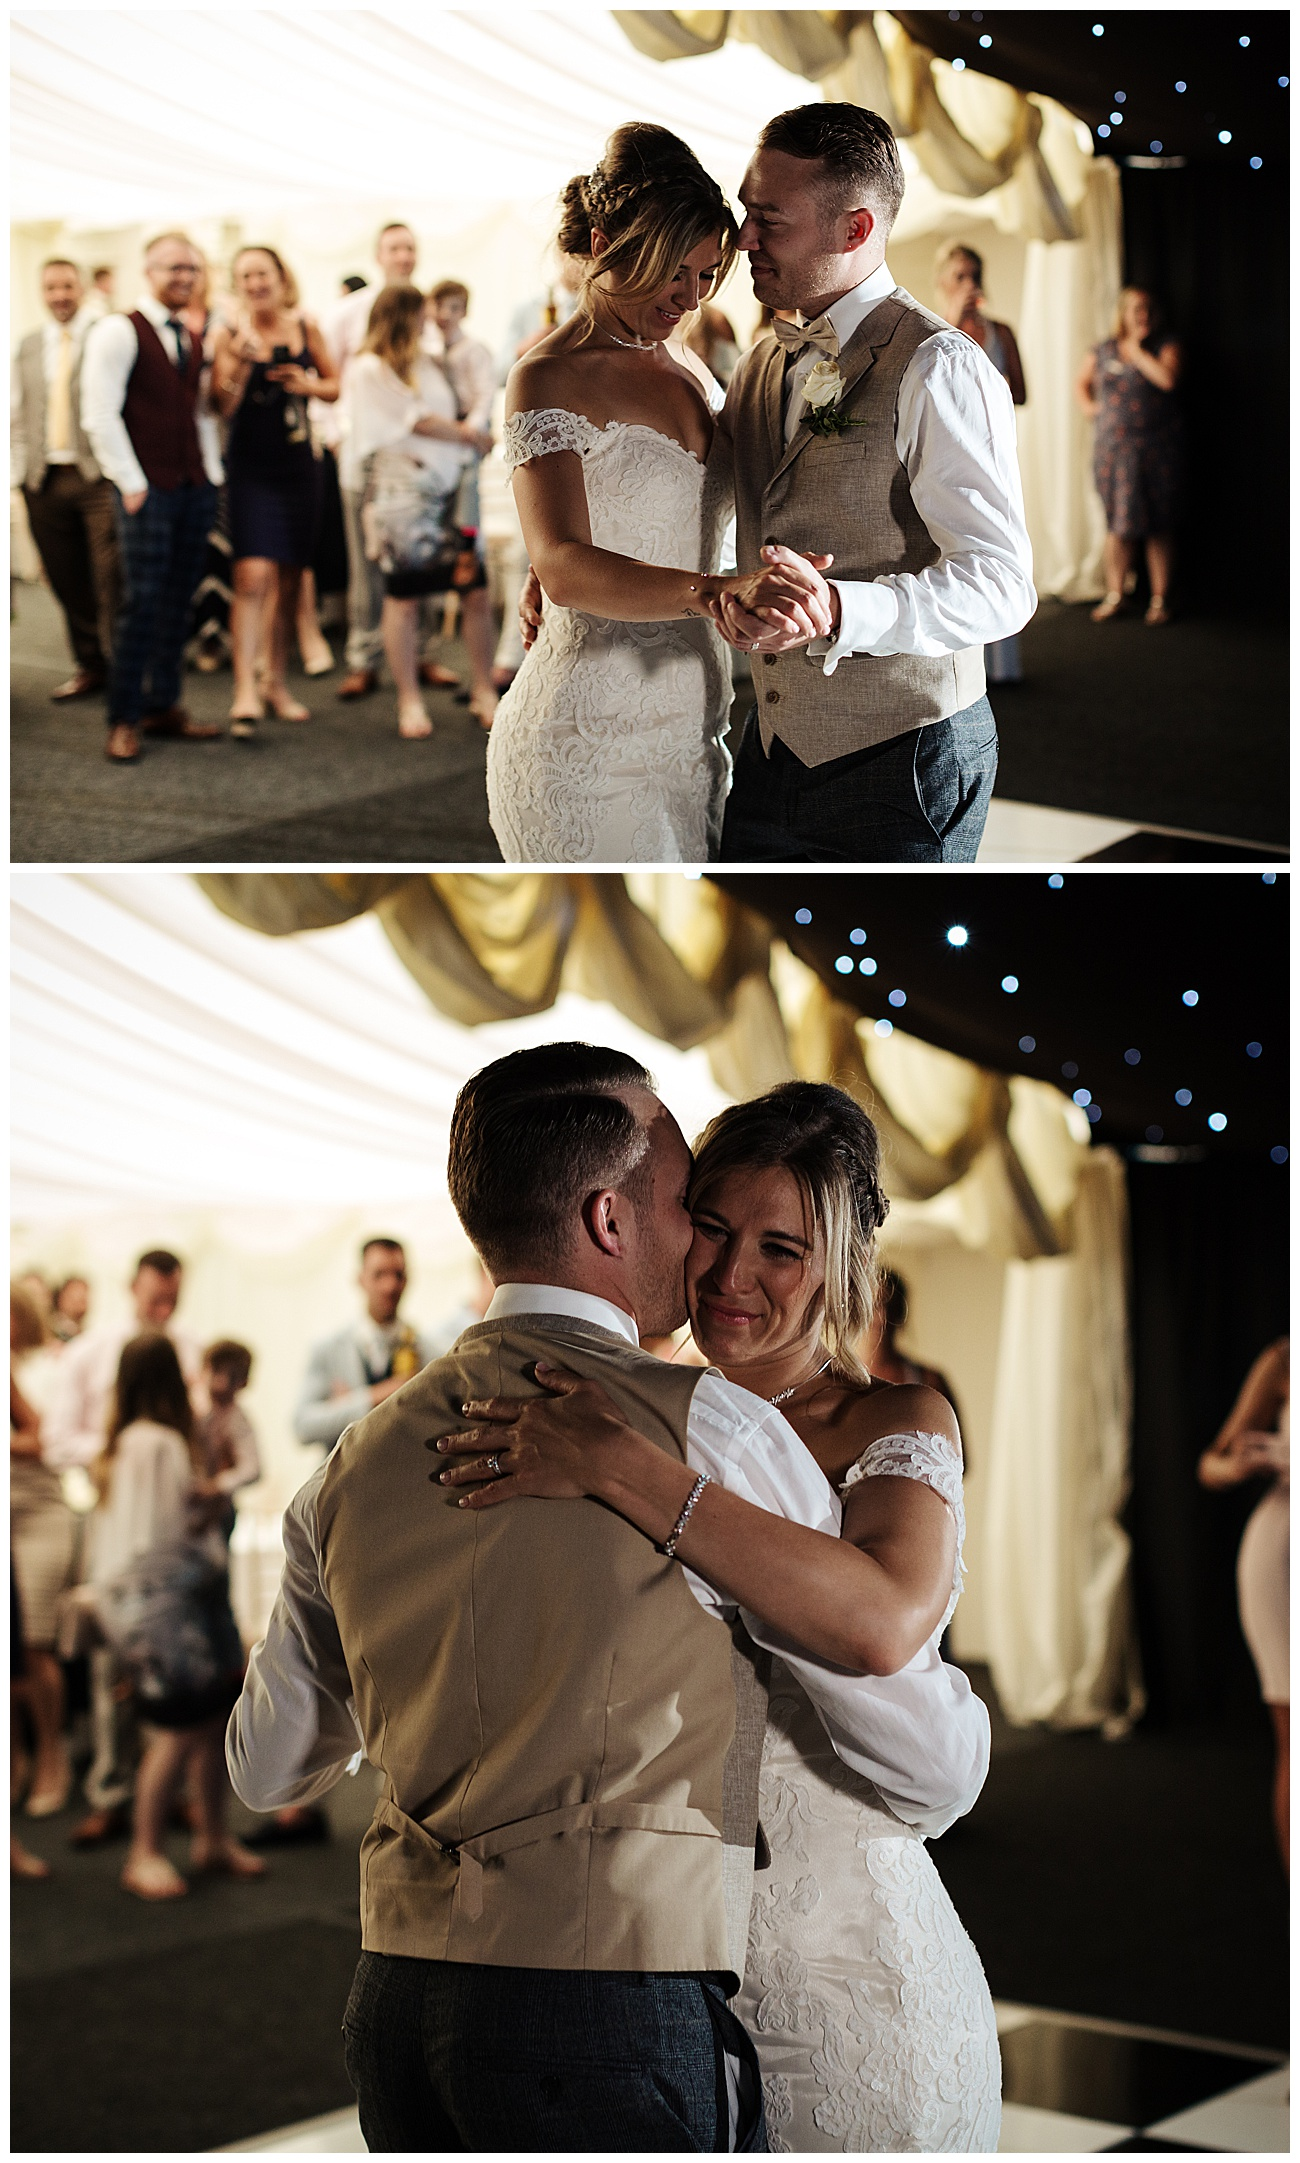 The bride and groom hug during their first dance